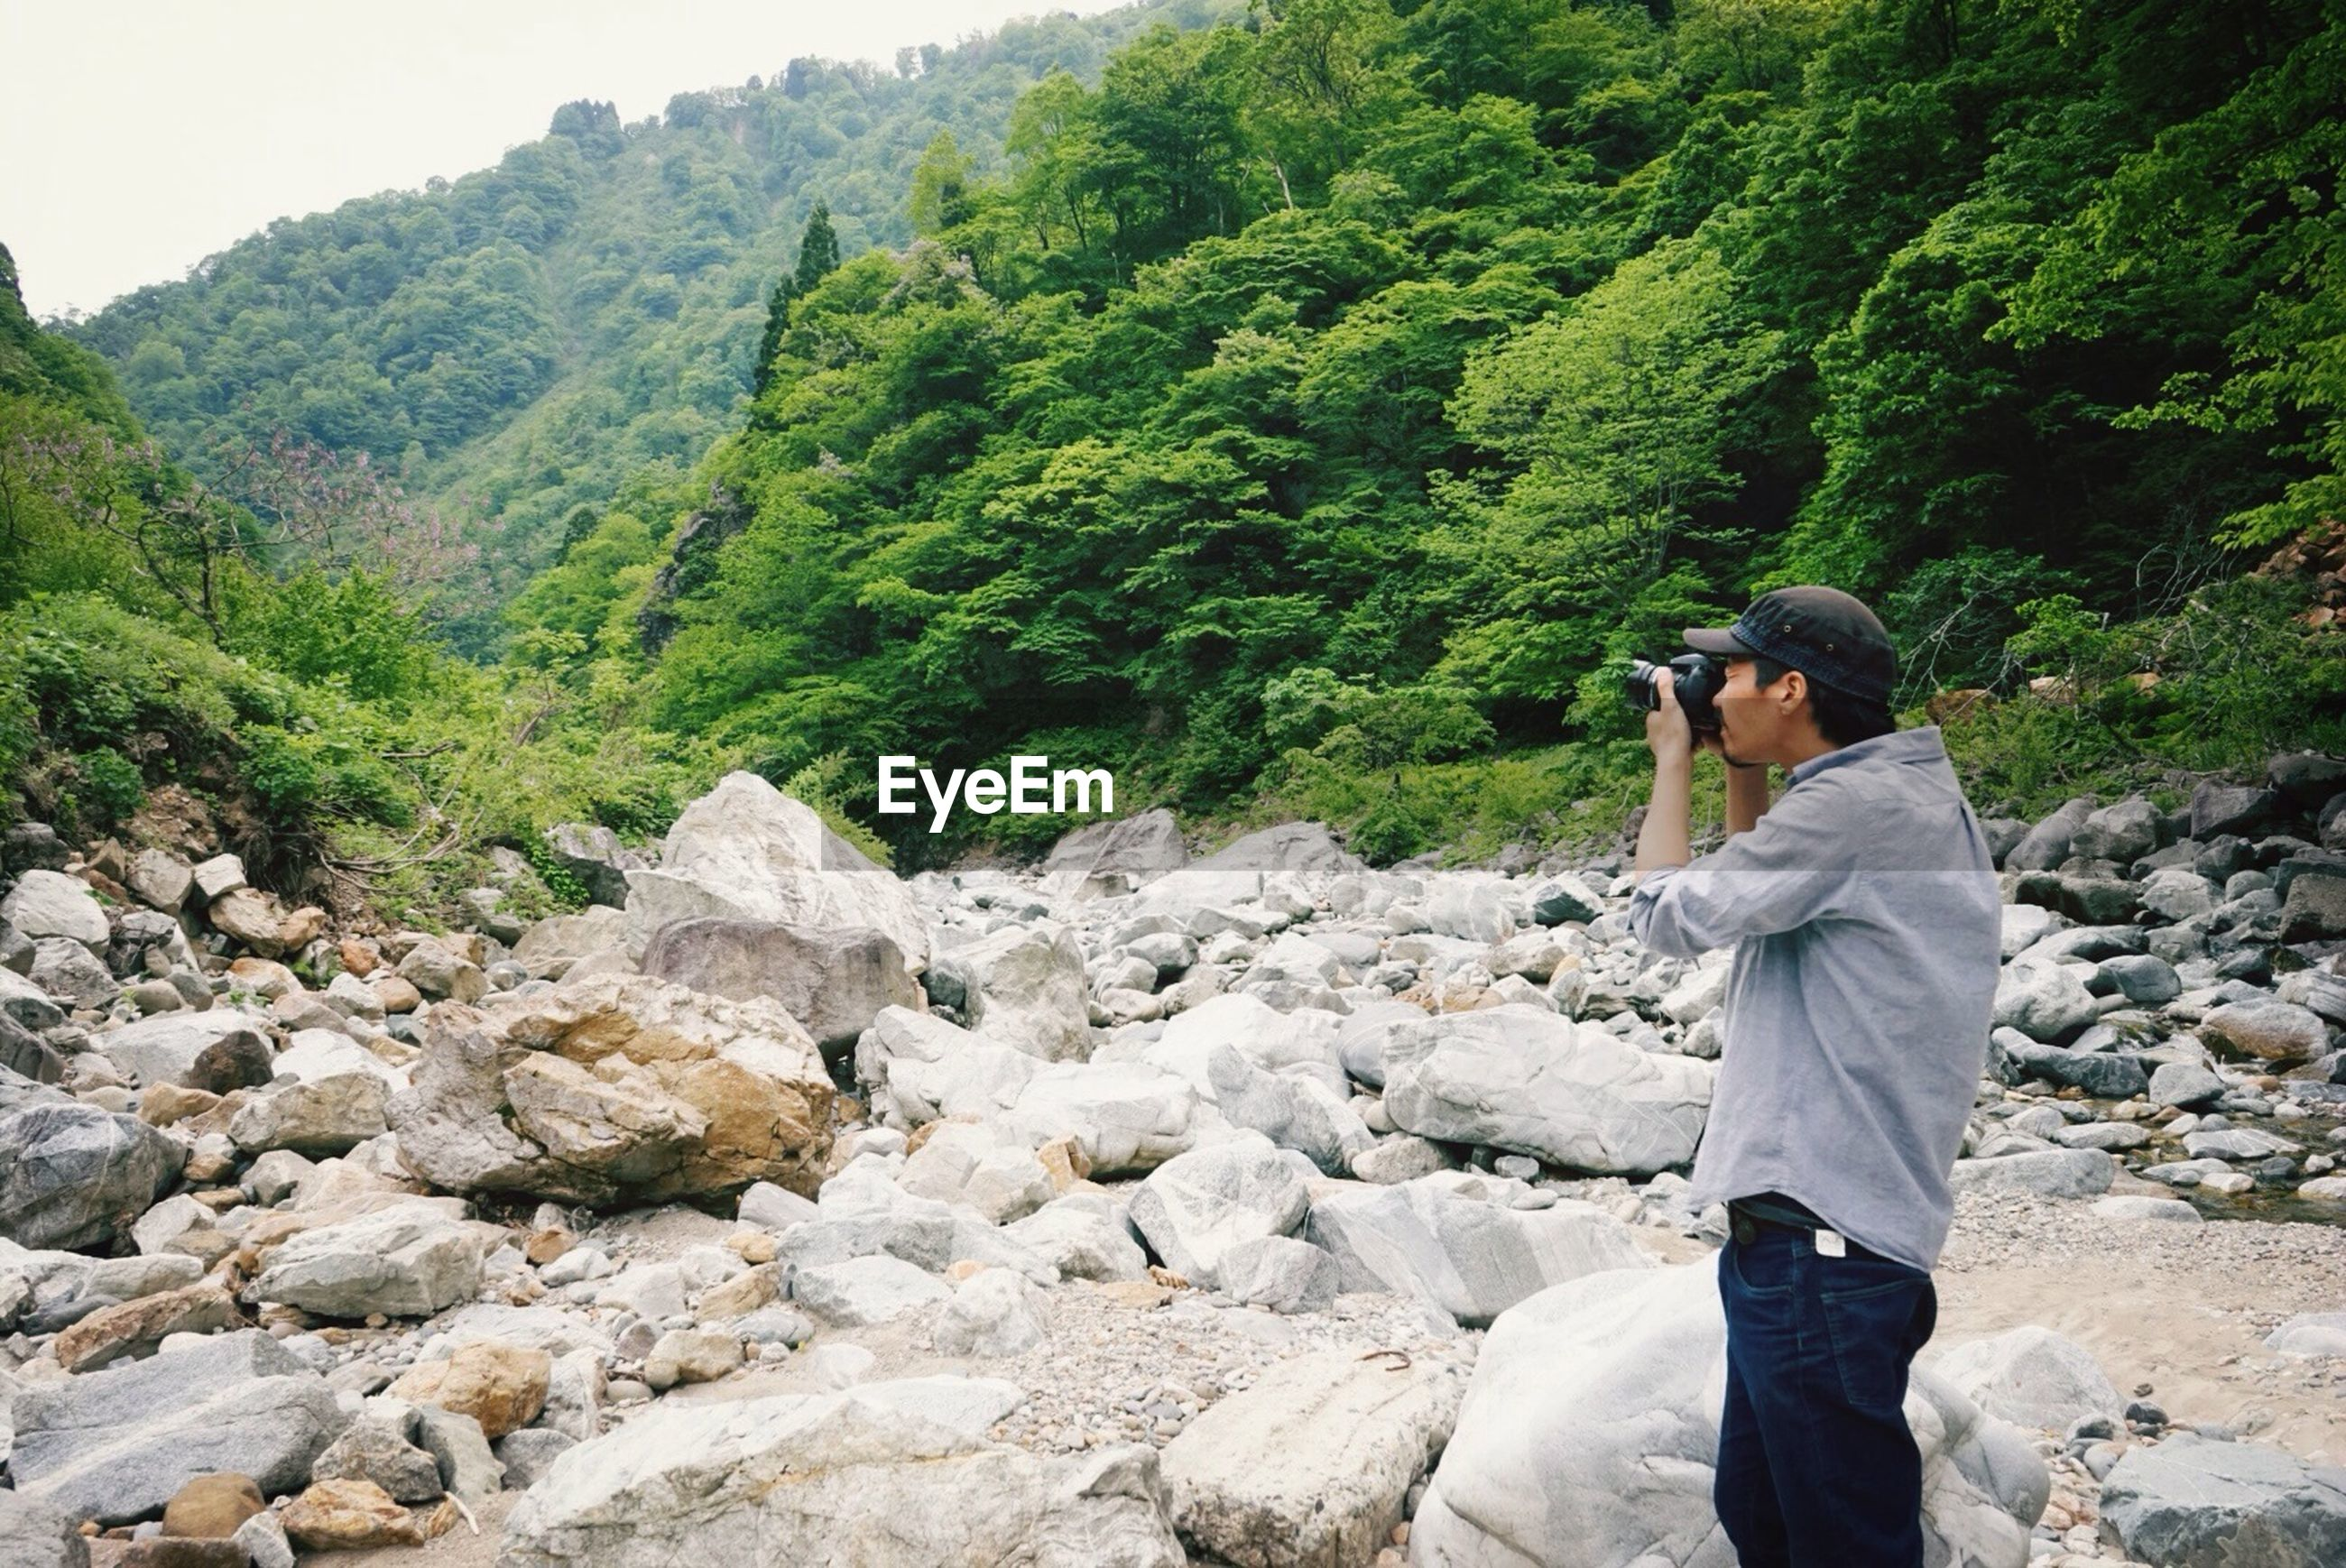 lifestyles, leisure activity, mountain, rock - object, men, casual clothing, hiking, standing, full length, nature, rear view, backpack, adventure, landscape, rock formation, tranquility, rock, person